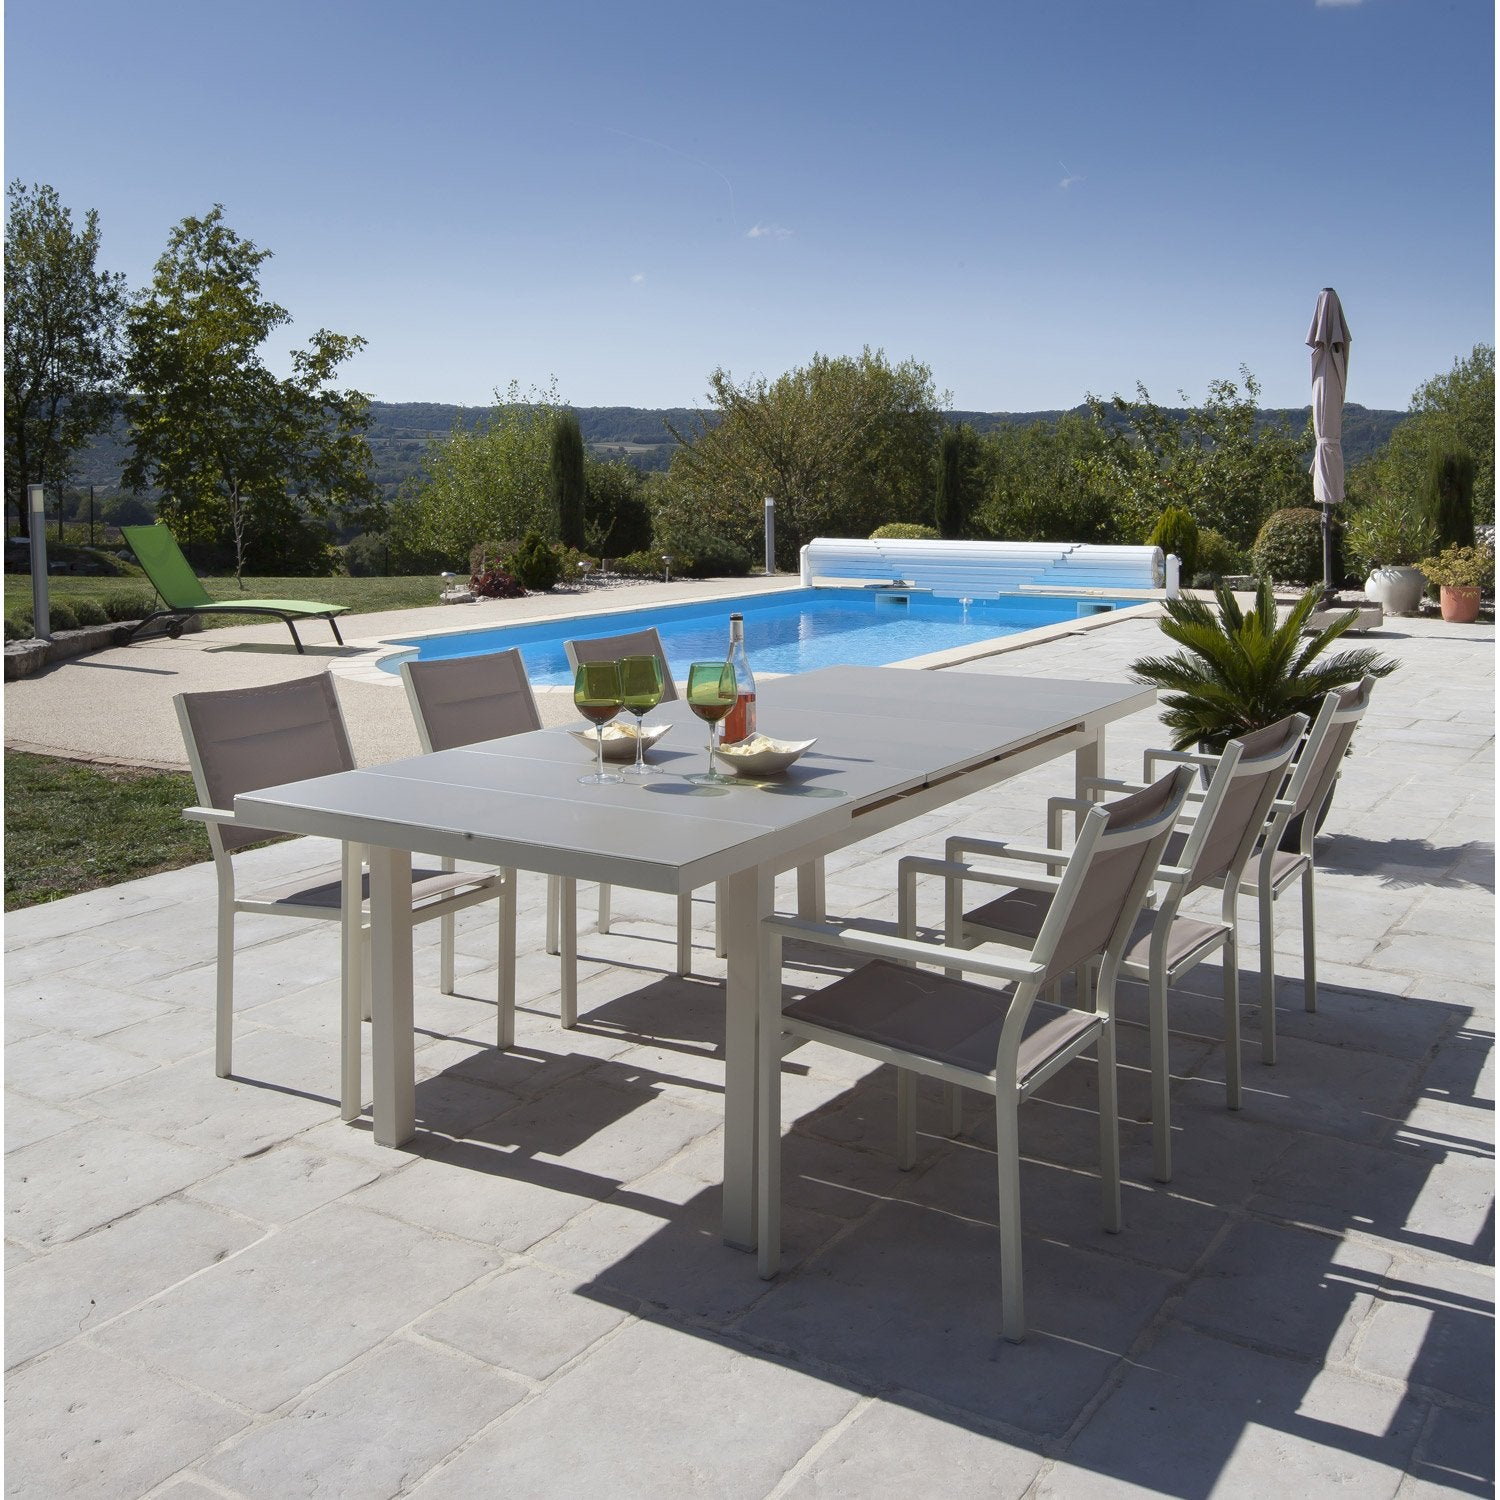 Salon de jardin malaga aluminium taupe 1 table et 6 fauteuils leroy merlin - Leroy merlin table jardin ...